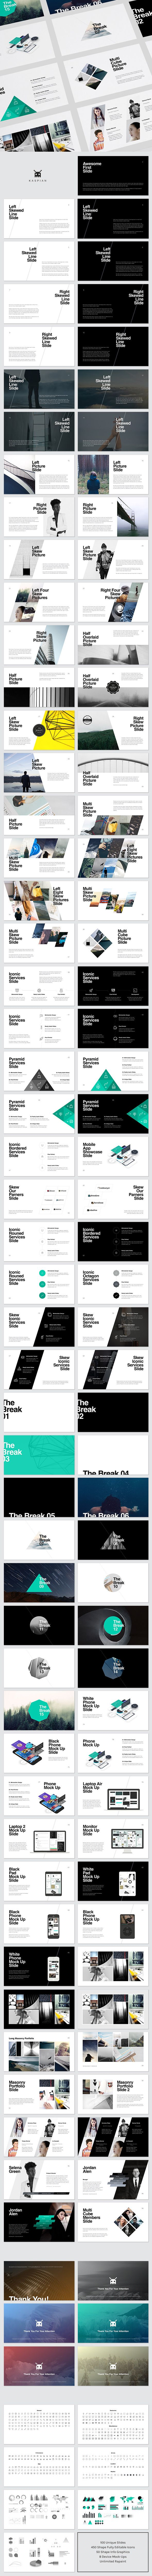 KASPIAN PowerPoint Presentation Template #slides #design Download: http://graphicriver.net/item/kaspian-powerpoint-presentation/14293362?ref=ksioks